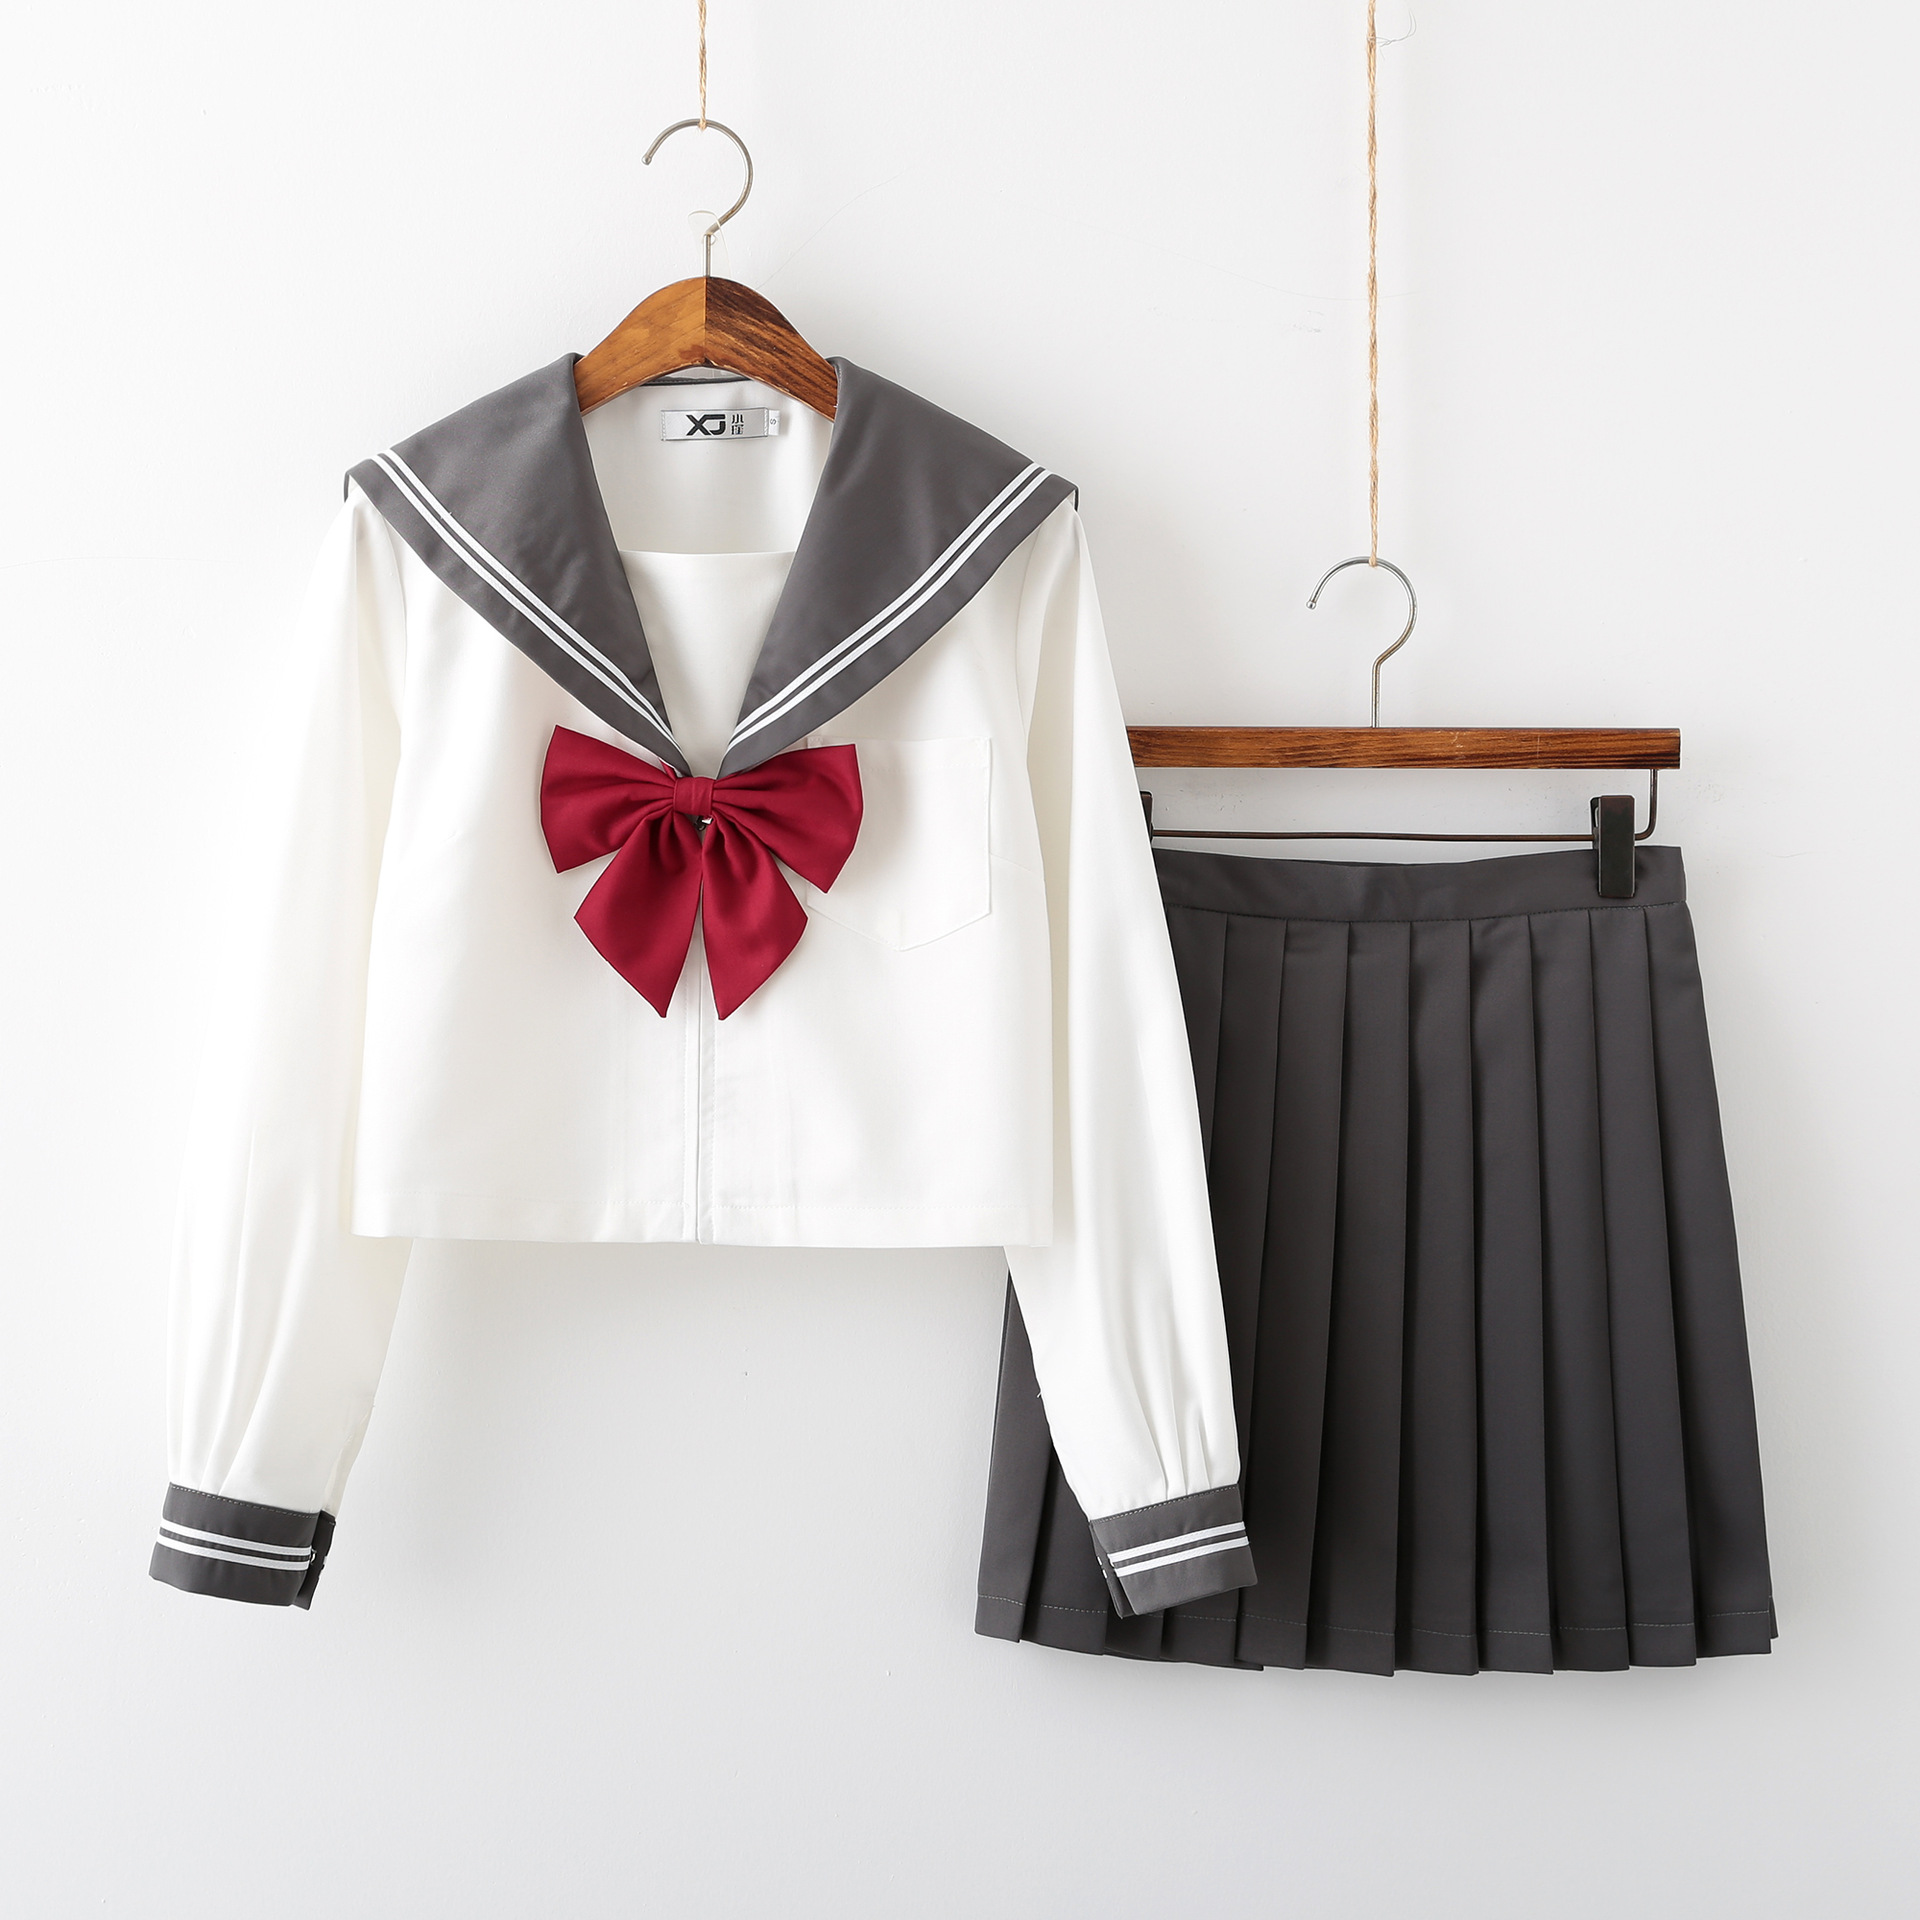 Gray Collar Long Sleeve JK School Uniform Set For Girls White Shirt And Pleated Skirt Suits Student Cosplay